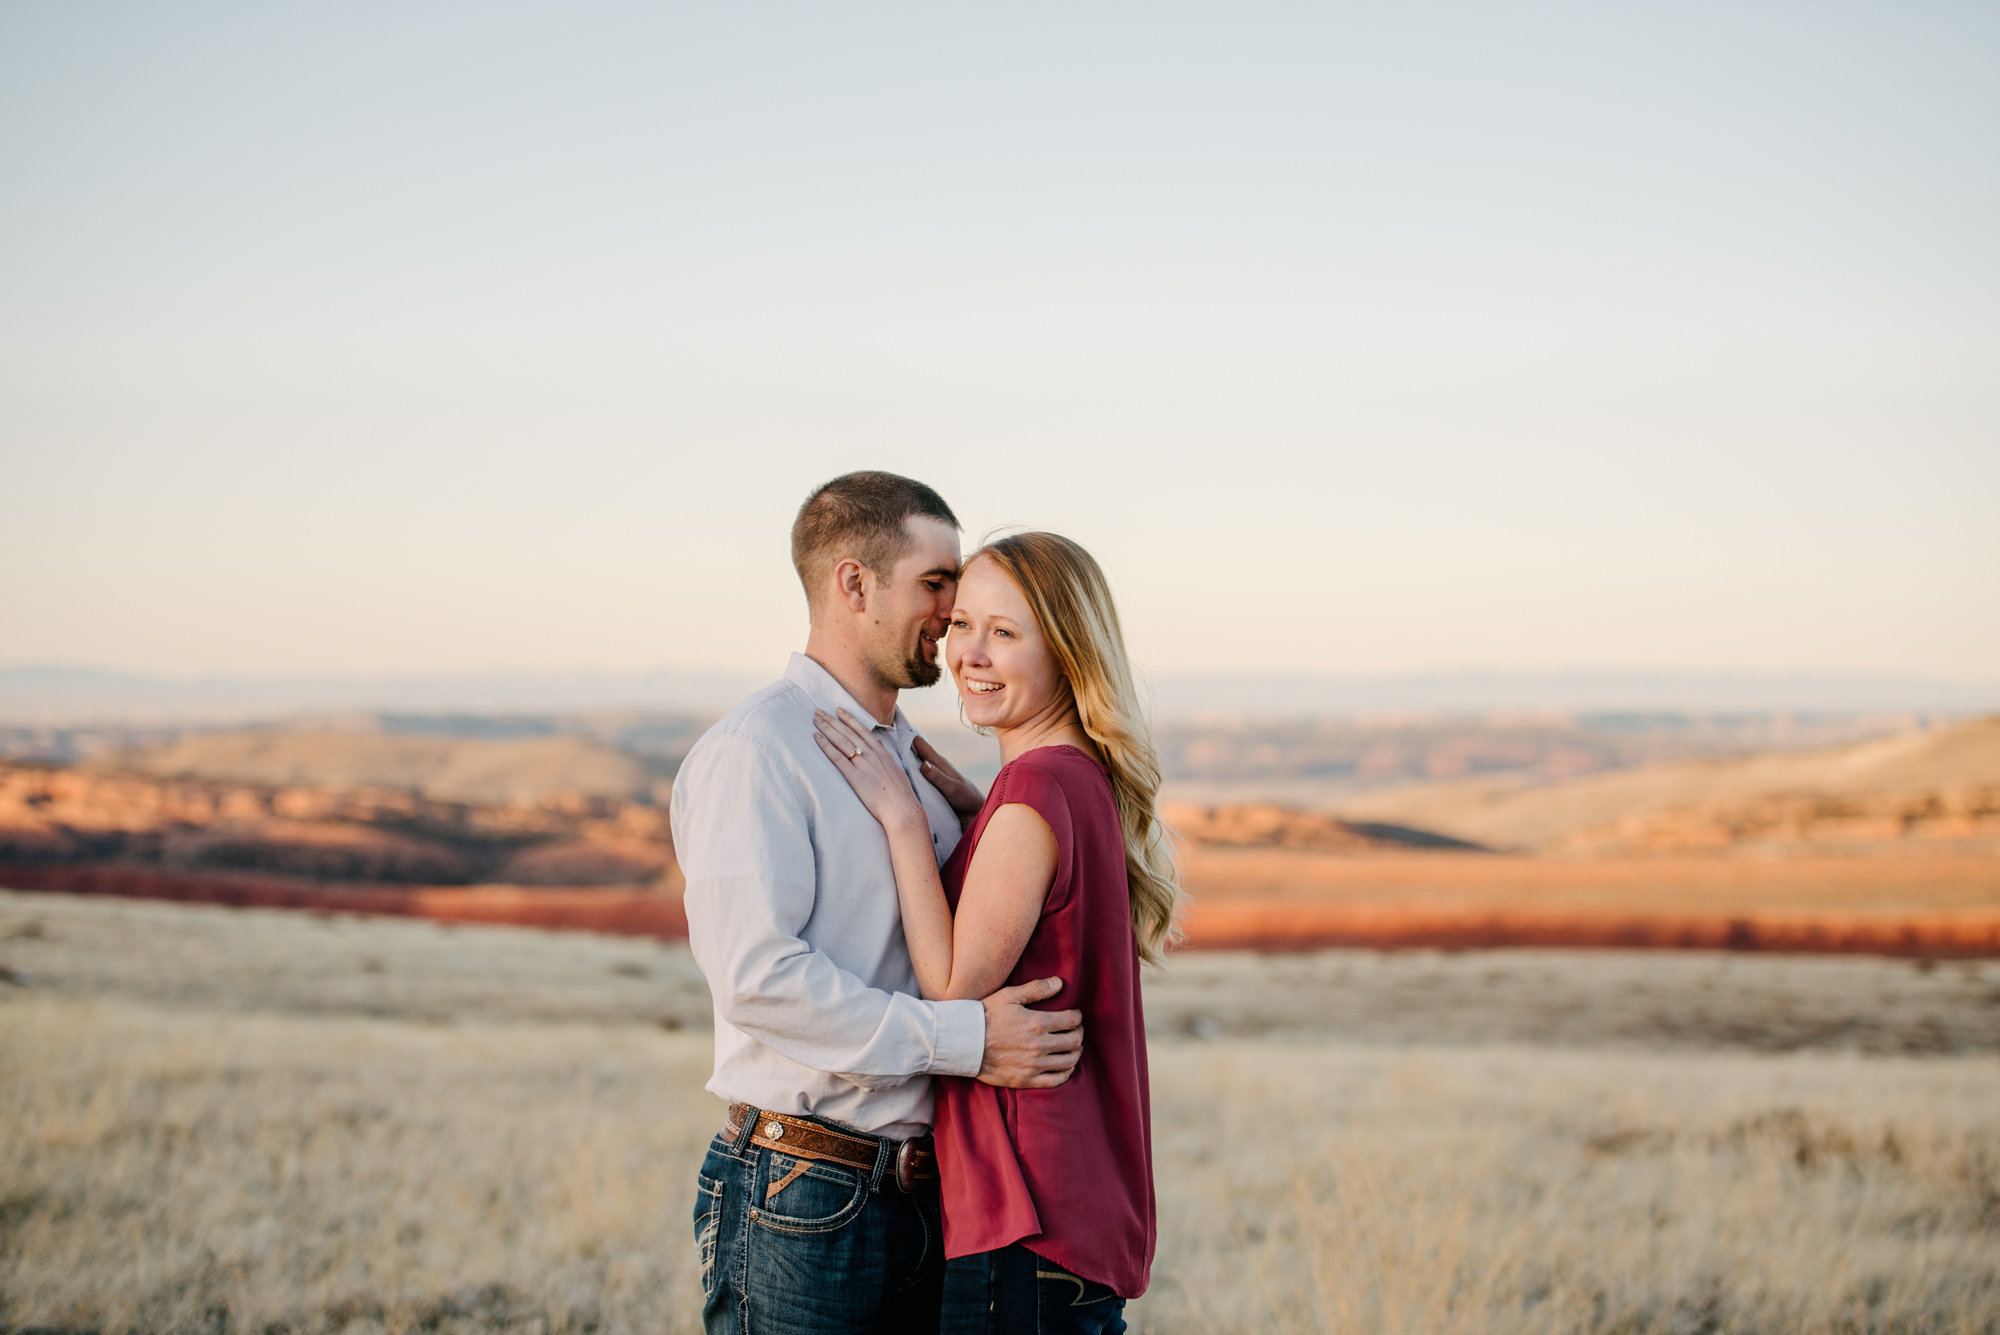 Ceira & Bryce_Wyoming Engagement Photographer [Virgnia Ruth Photography]-48.jpg